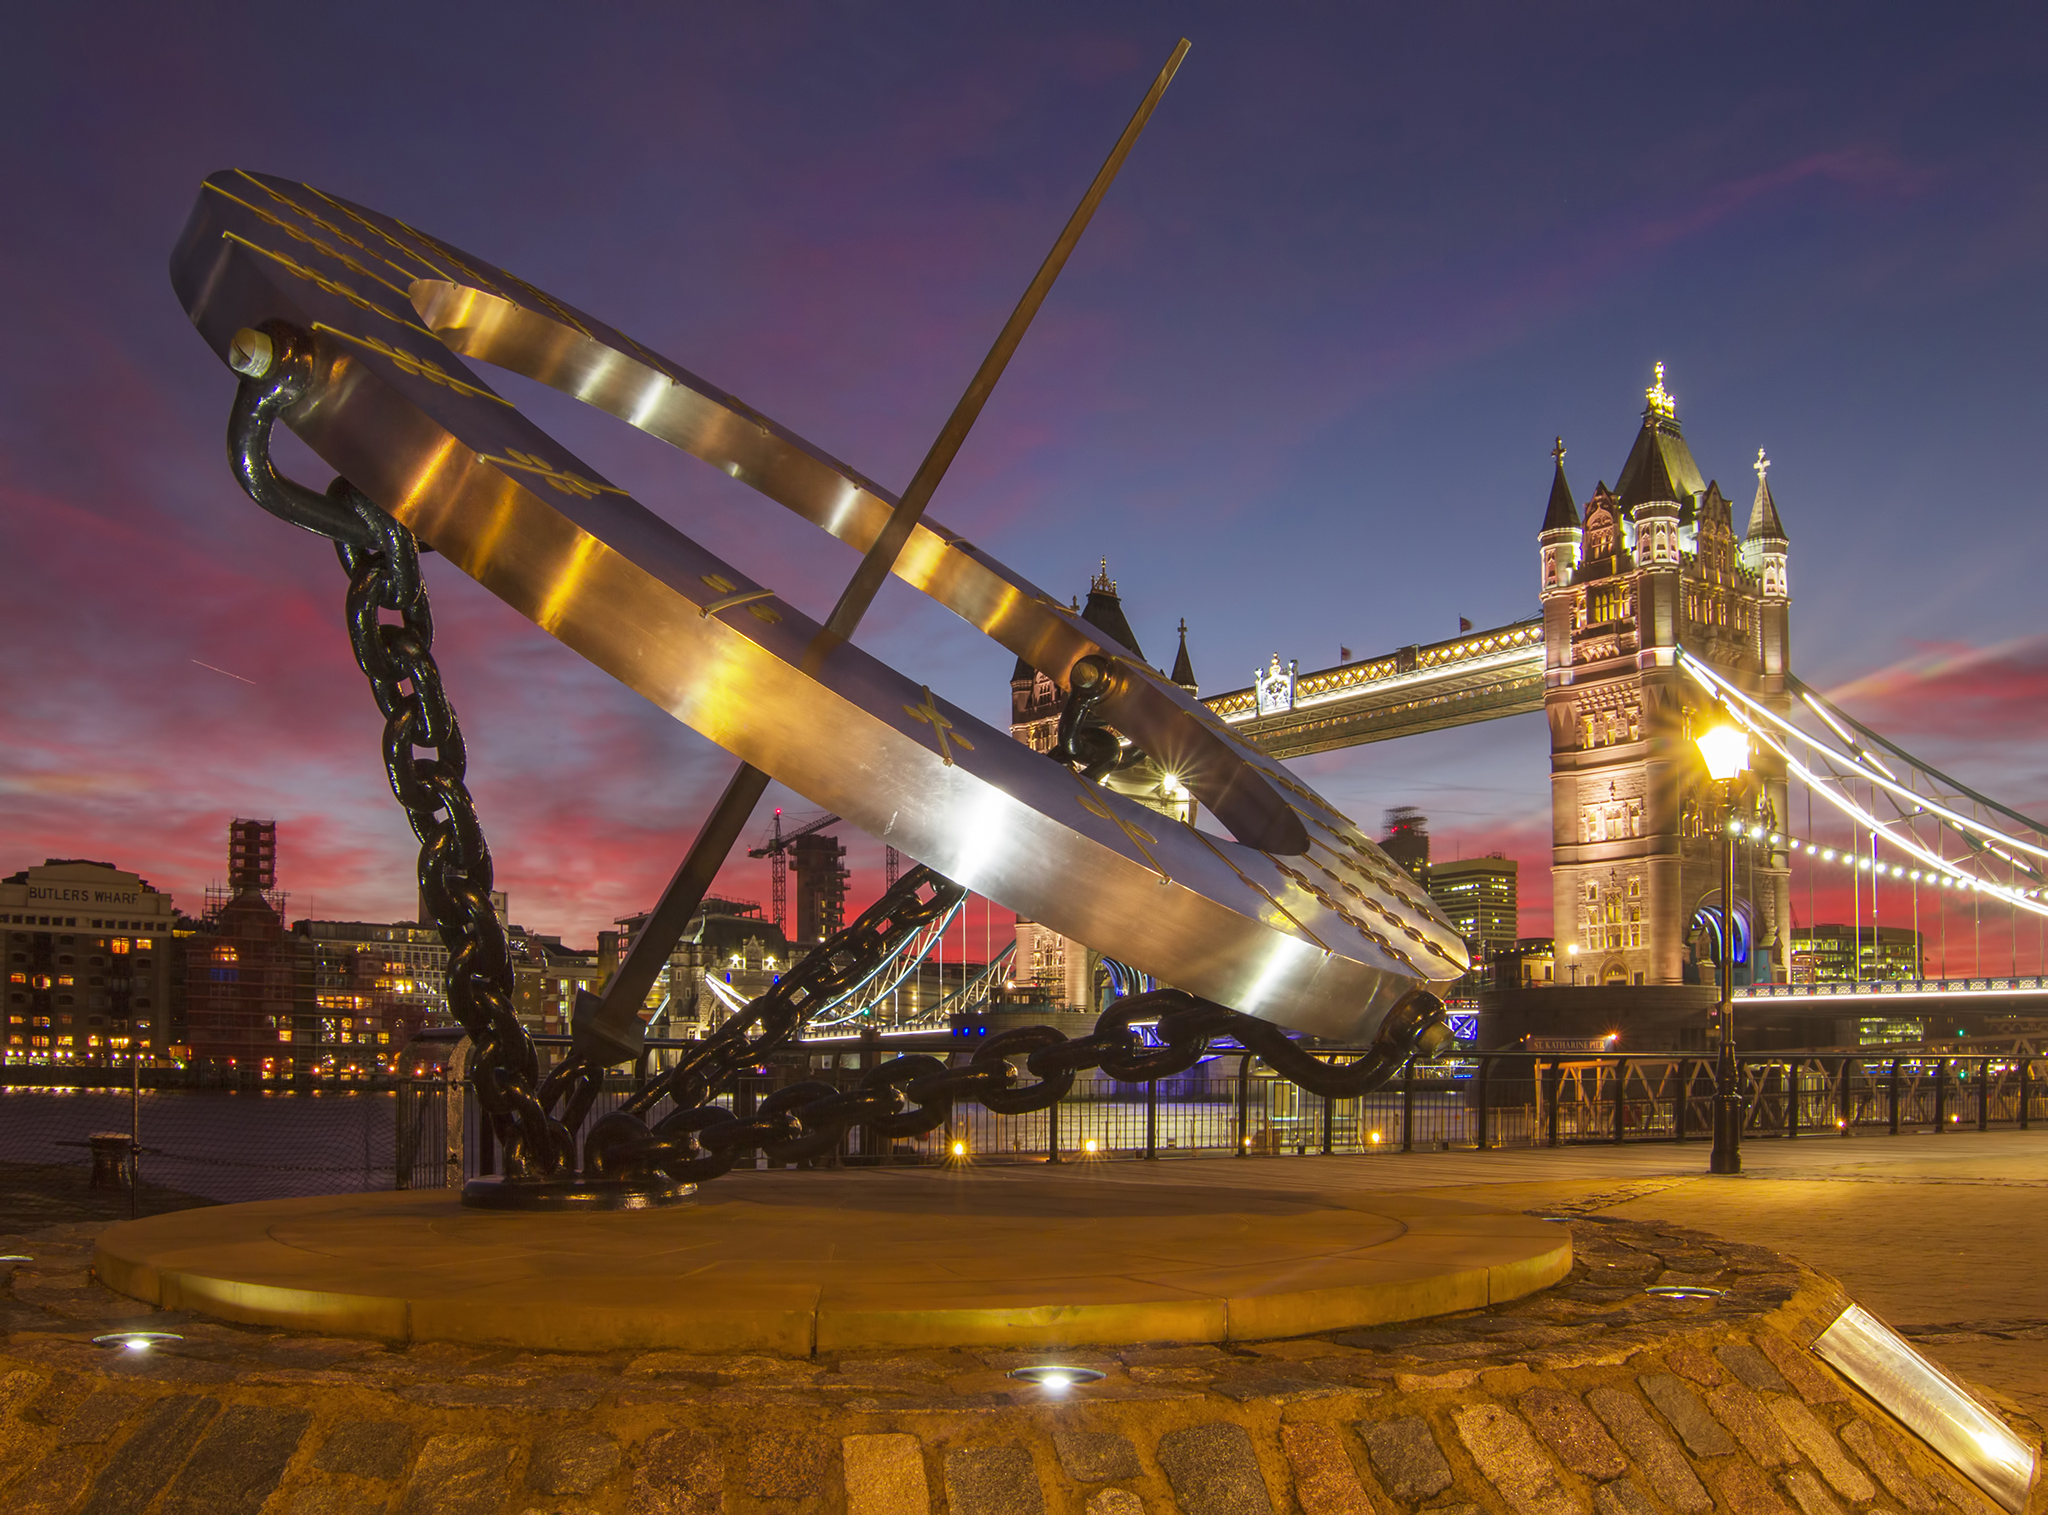 Tower Bridge and the Sun Dial at Sunset, United Kingdom